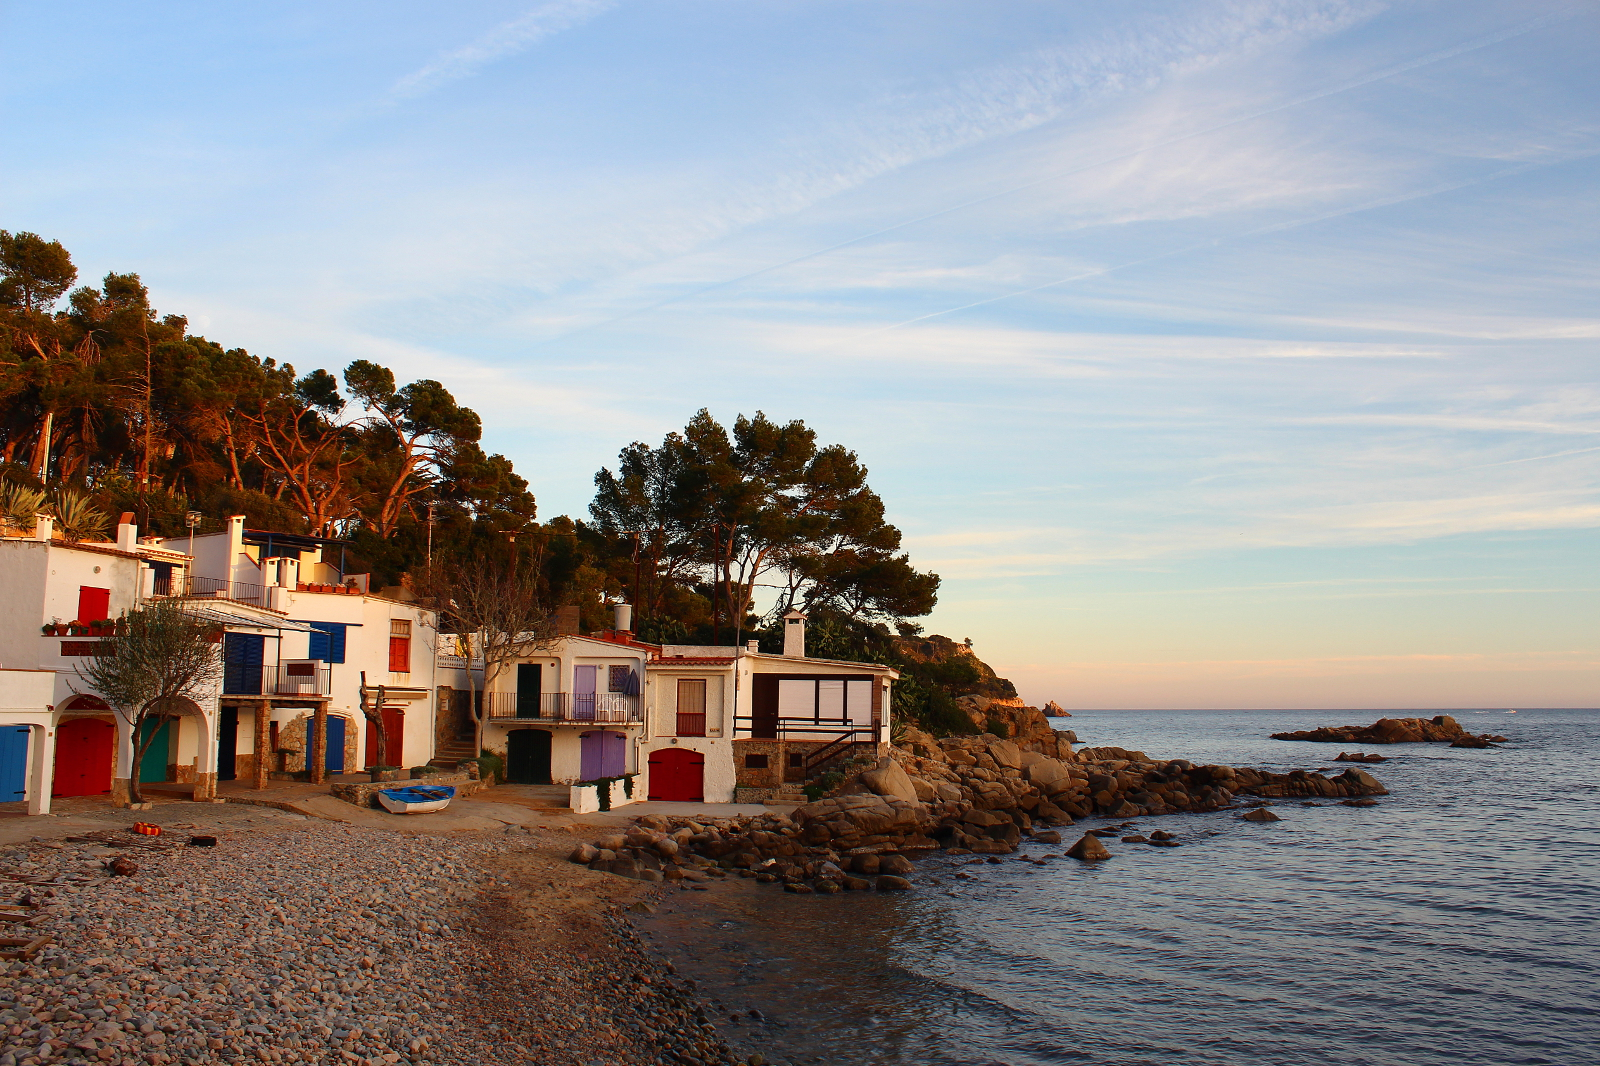 Camping Costa Brava, camping Espagne, camping bord de mer, camping mer et soleil, location mobil home